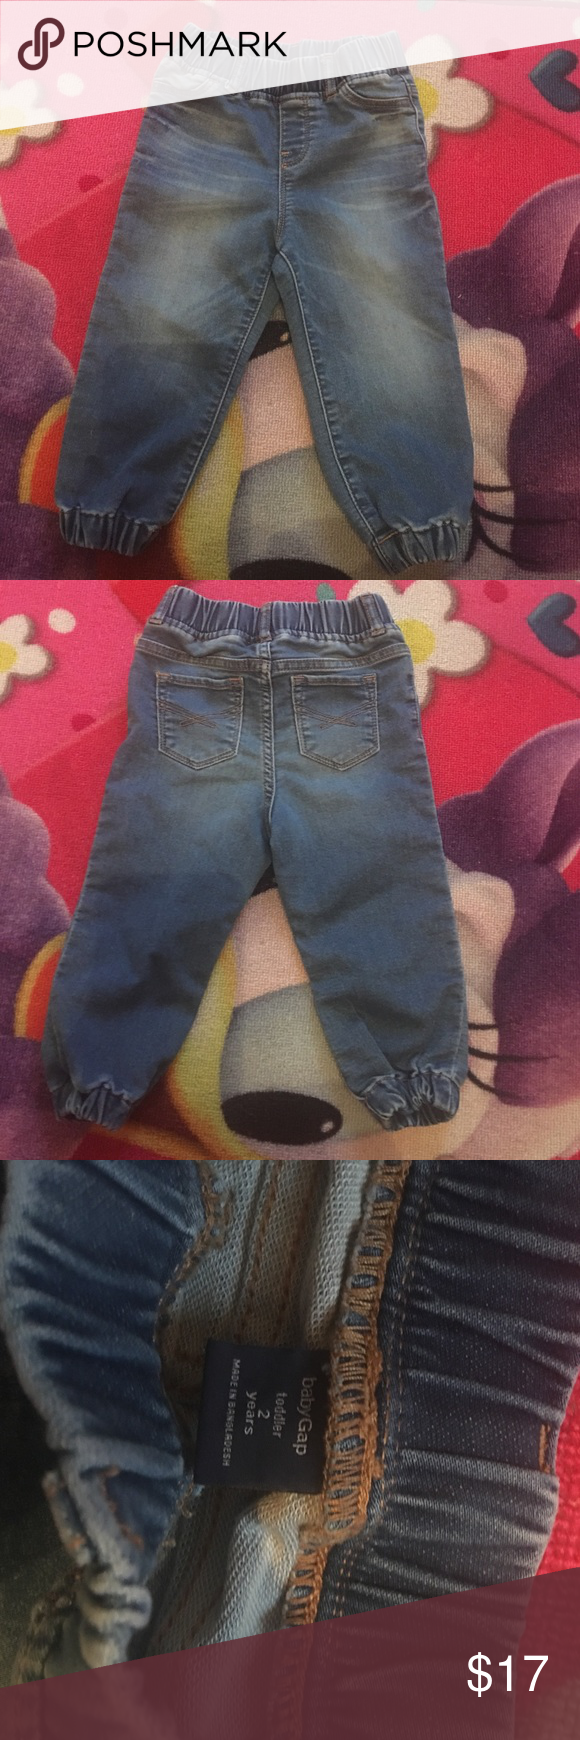 Toddler girl denim jeans 👖 Good condition, fitted ankle and true to size GAP Bottoms Jeans